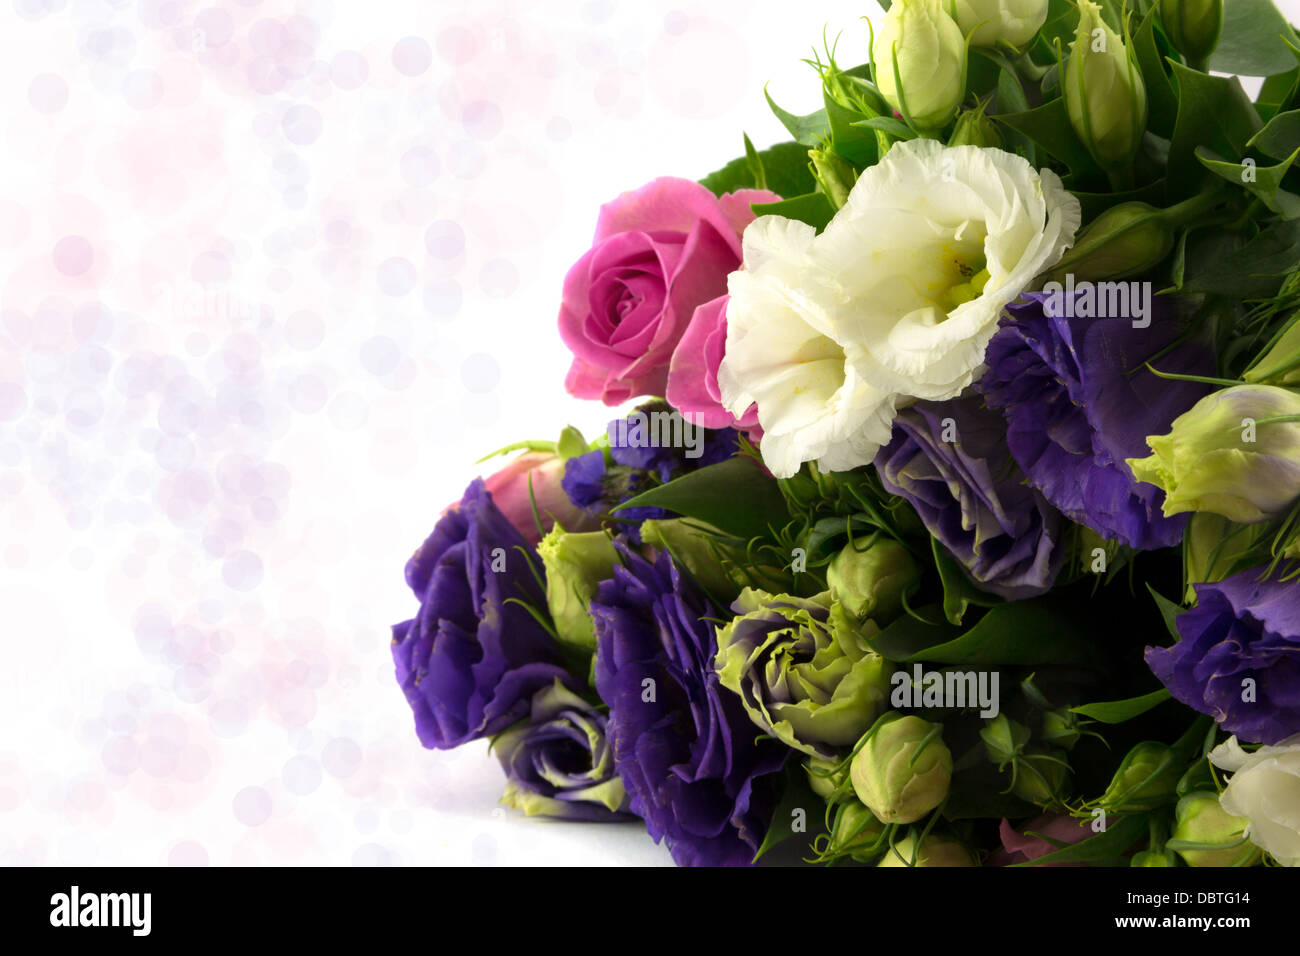 Bouquet of white,blue and pink flowers with diffused background - Stock Image